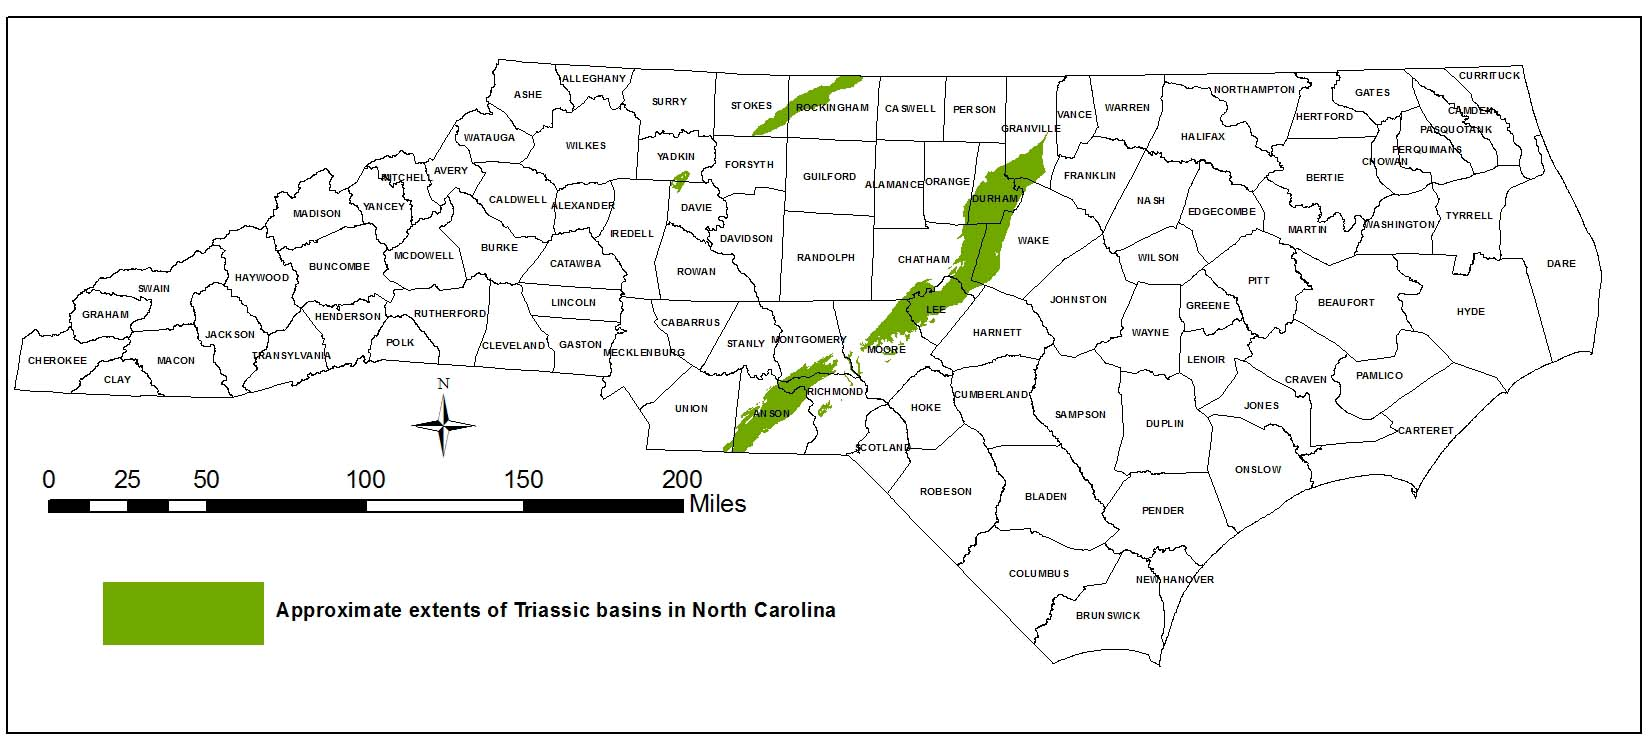 Triassic basin locations in NC